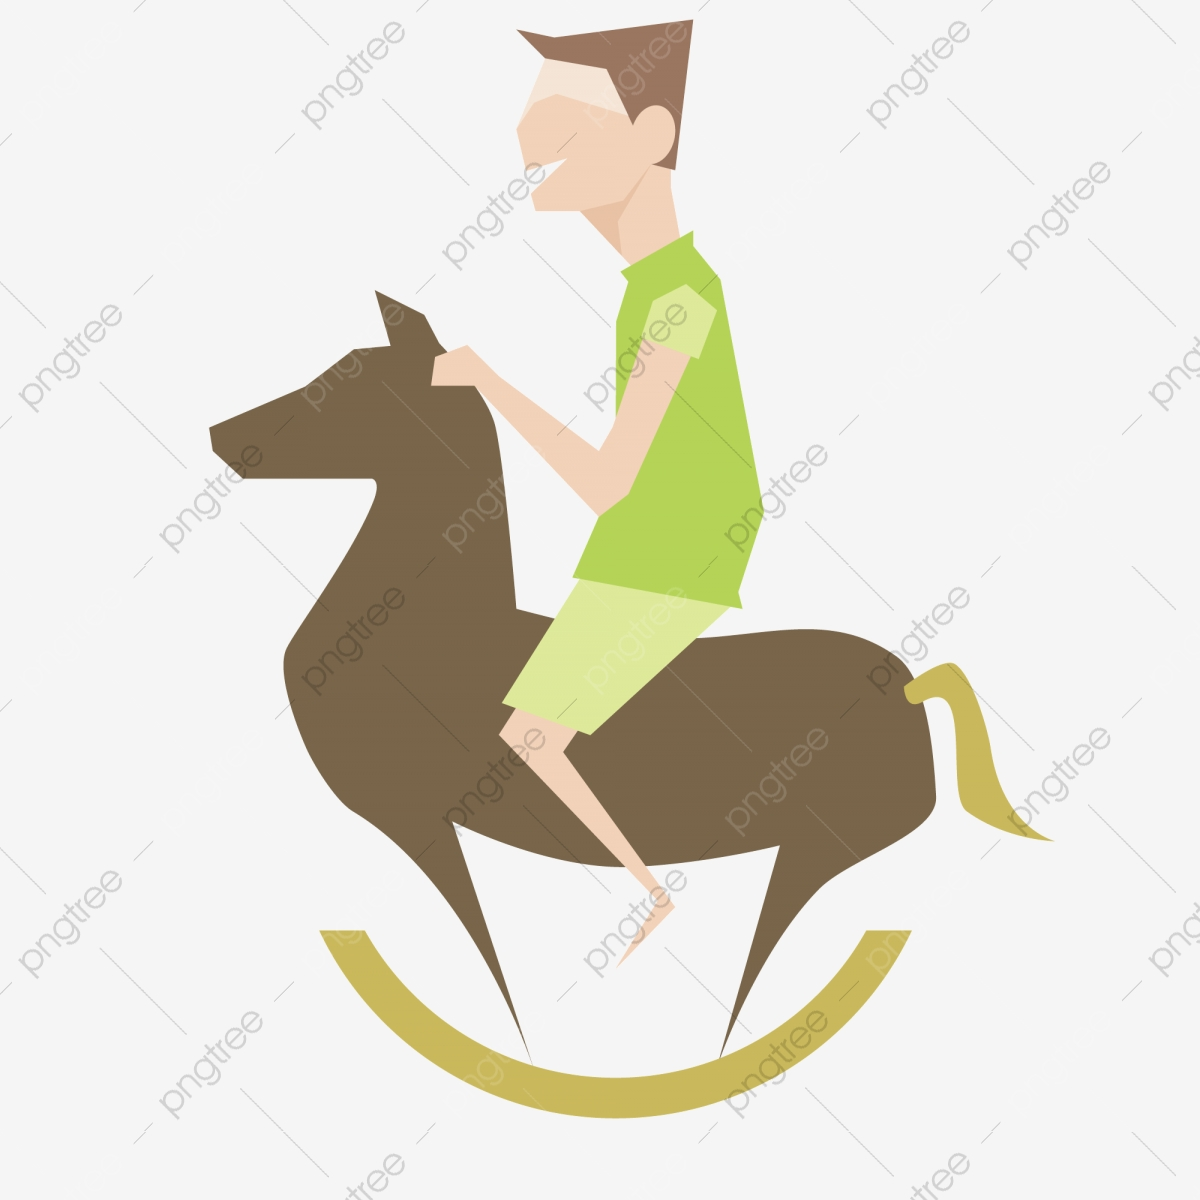 Riding A Wooden Horse Boy Cartoon Illustration Boy Riding A Trojan Sport Png And Vector With Transparent Background For Free Download